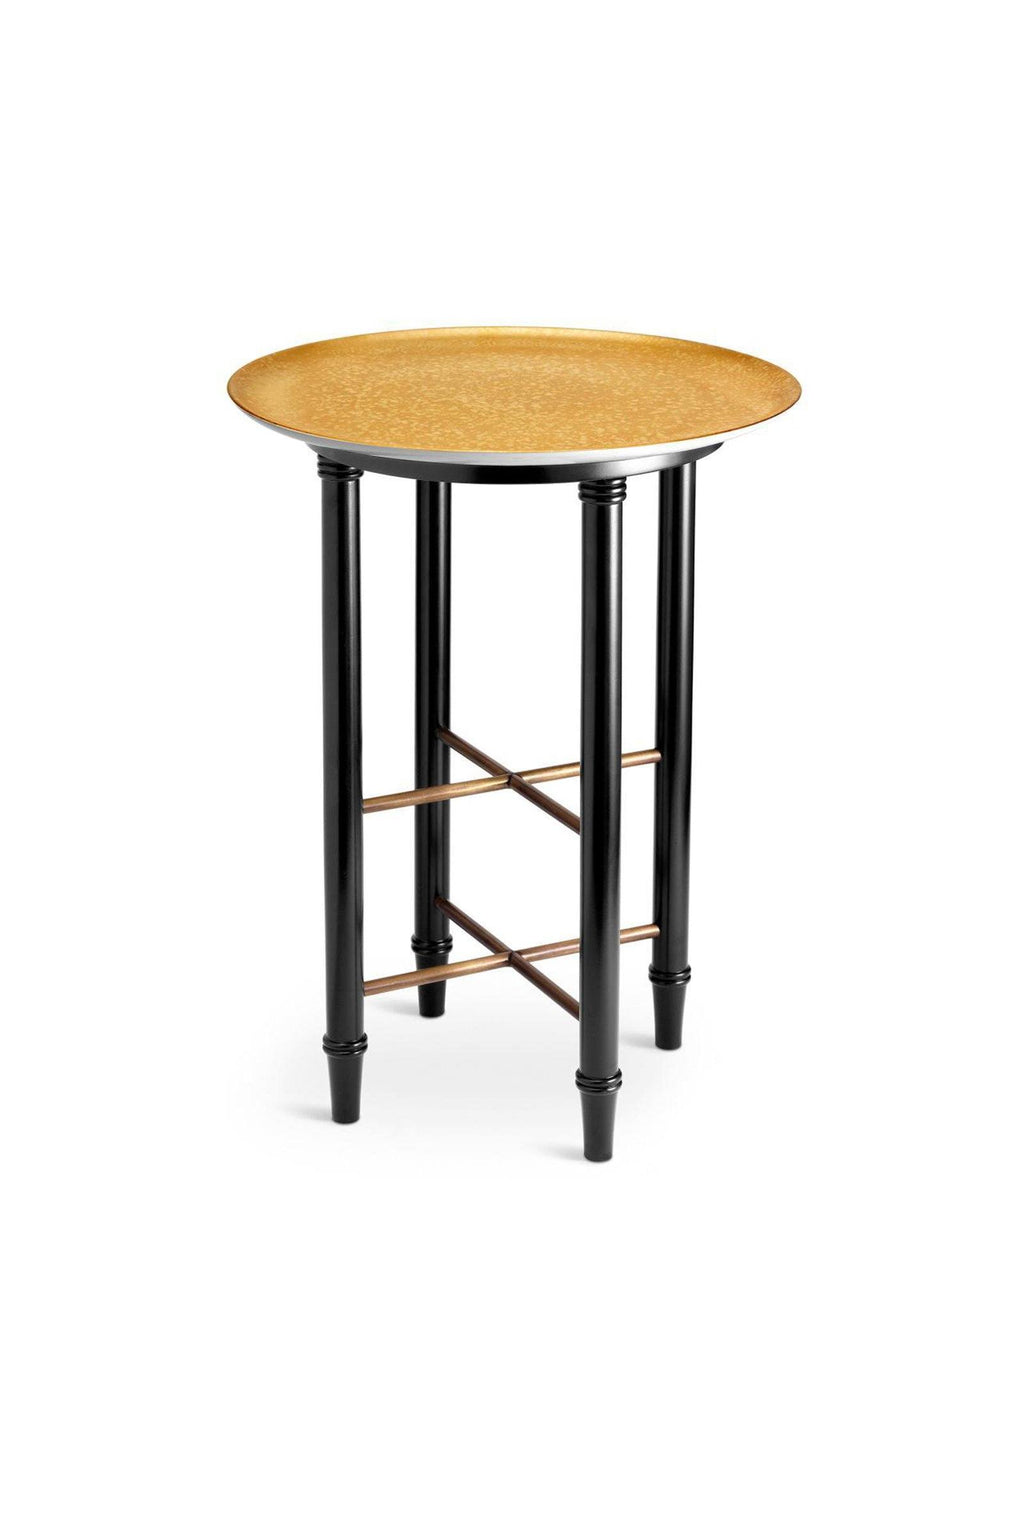 L'OBJET | Alchimie Side Table L'Objet Marie France Van Damme Gold